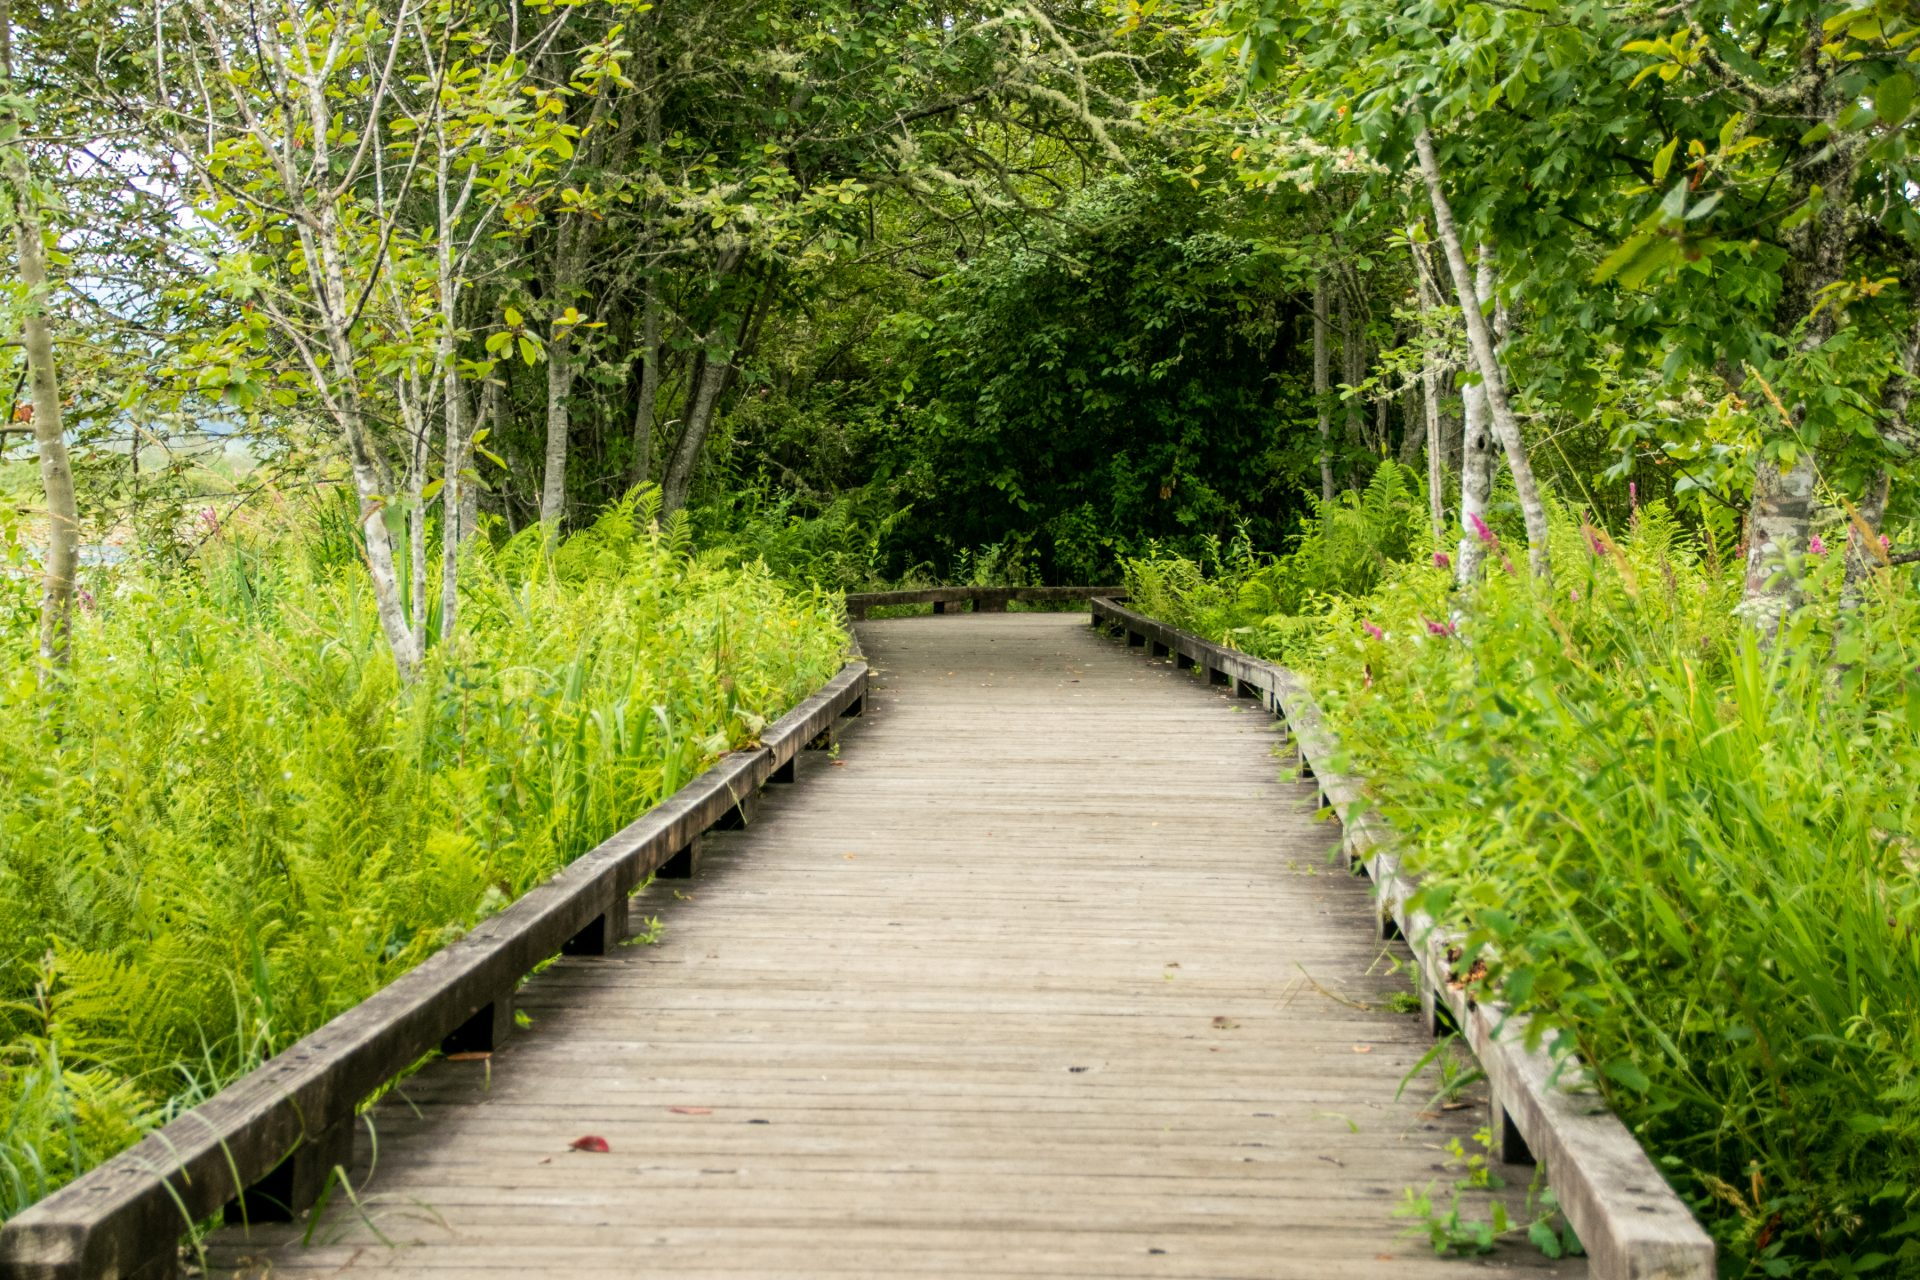 Boardwalk With Low Railing Between Trees